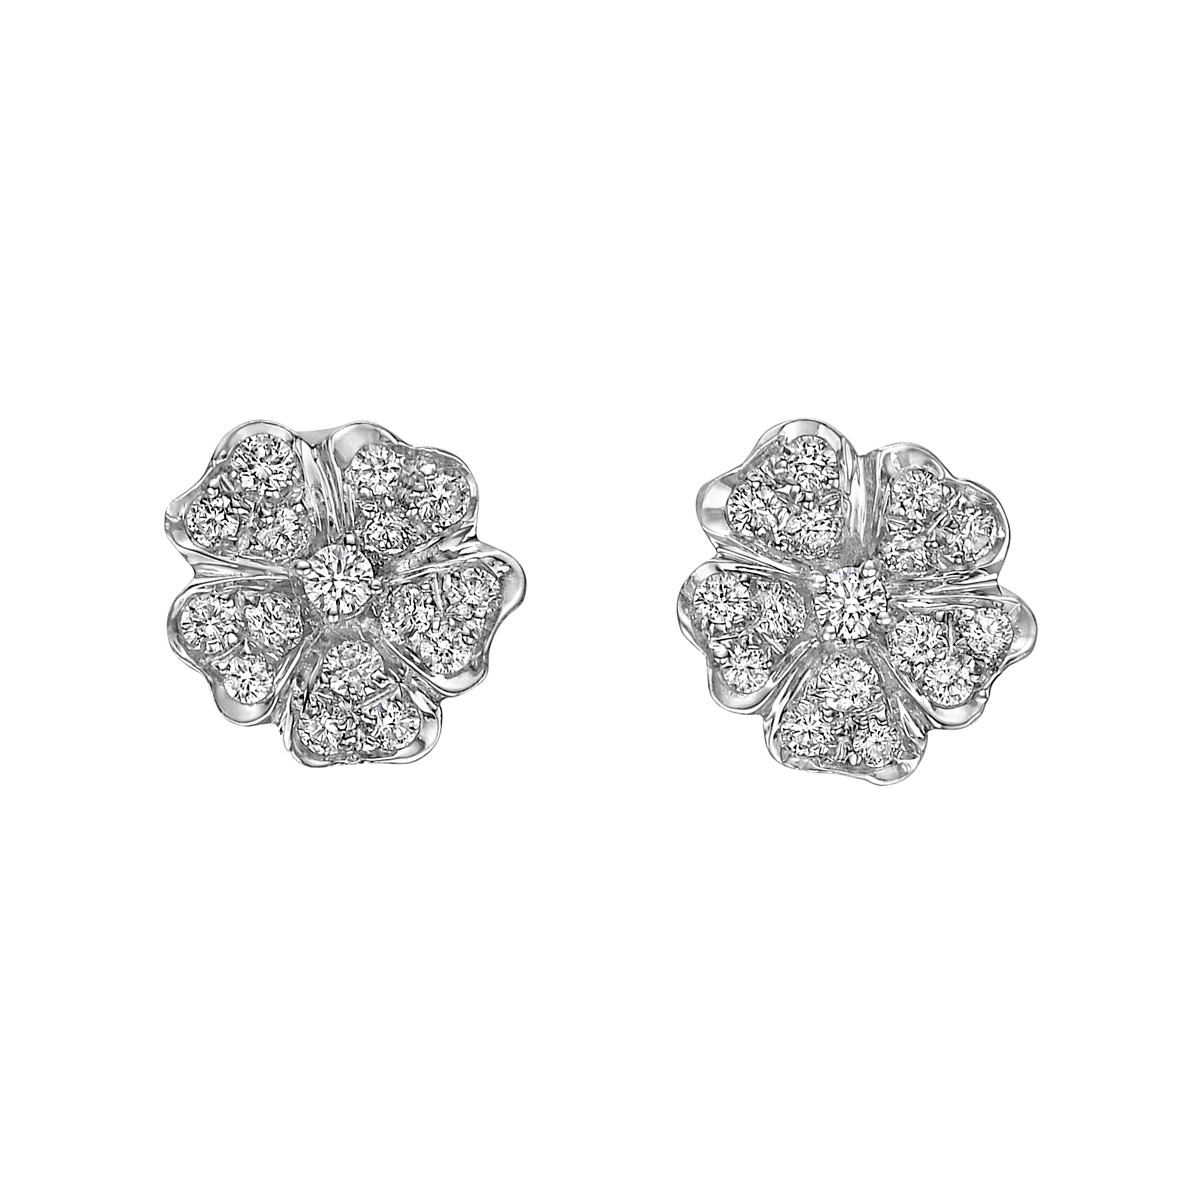 18k White Gold & Diamond Flower Stud Earrings